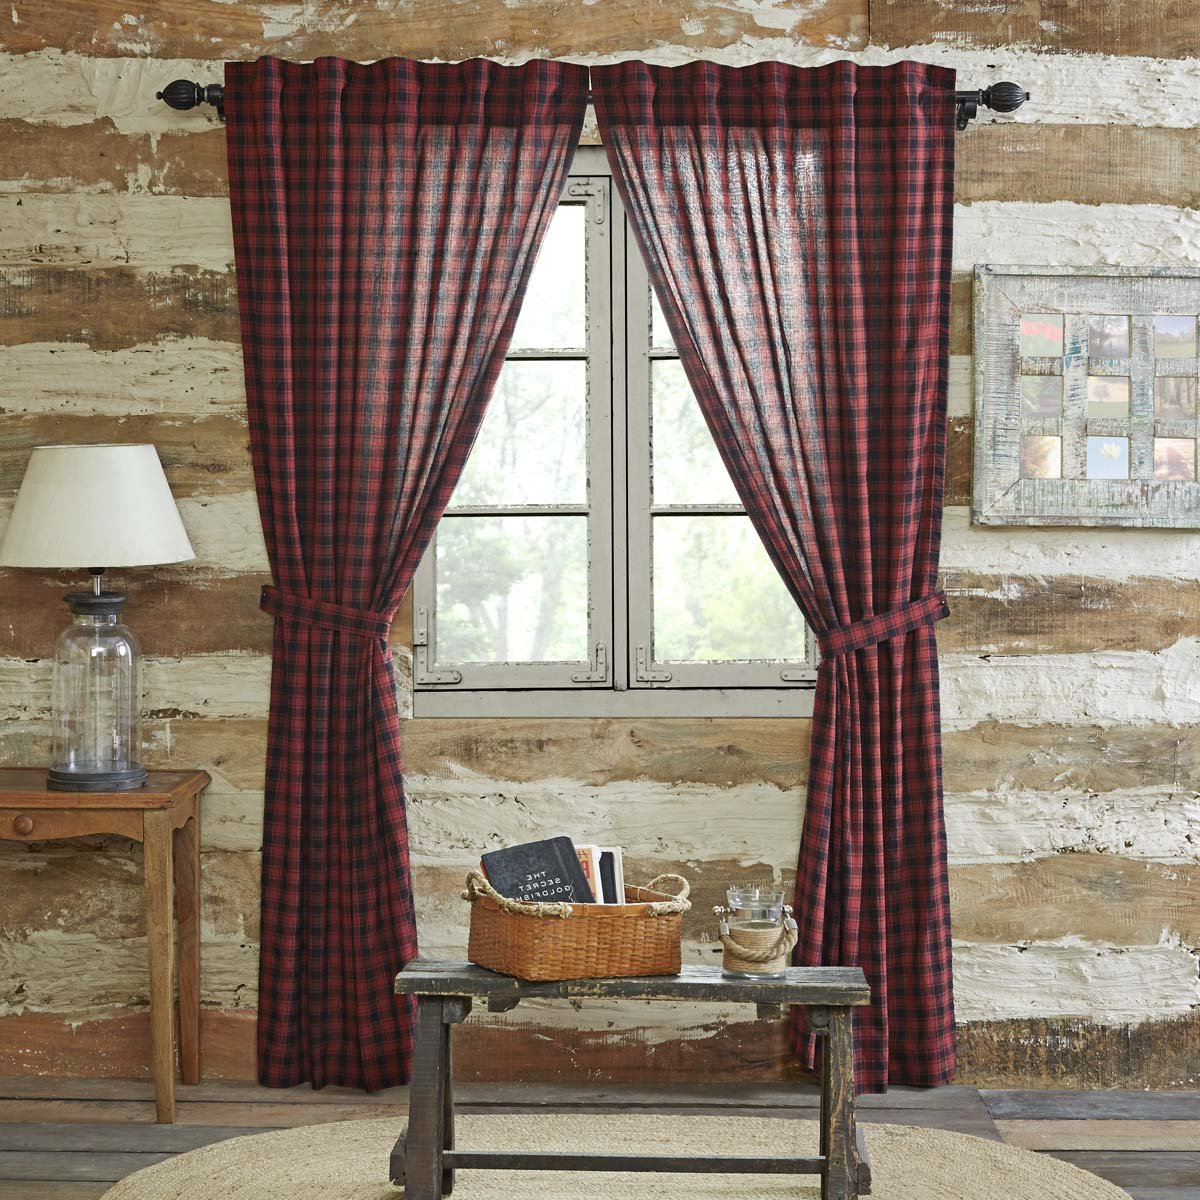 Recent Vhc Brands Rustic & Lodge Window Cumberland Red Curtain Panel Pair, Chili Pepper In Cumberland Tier Pair Rod Pocket Cotton Buffalo Check Kitchen Curtains (View 5 of 20)